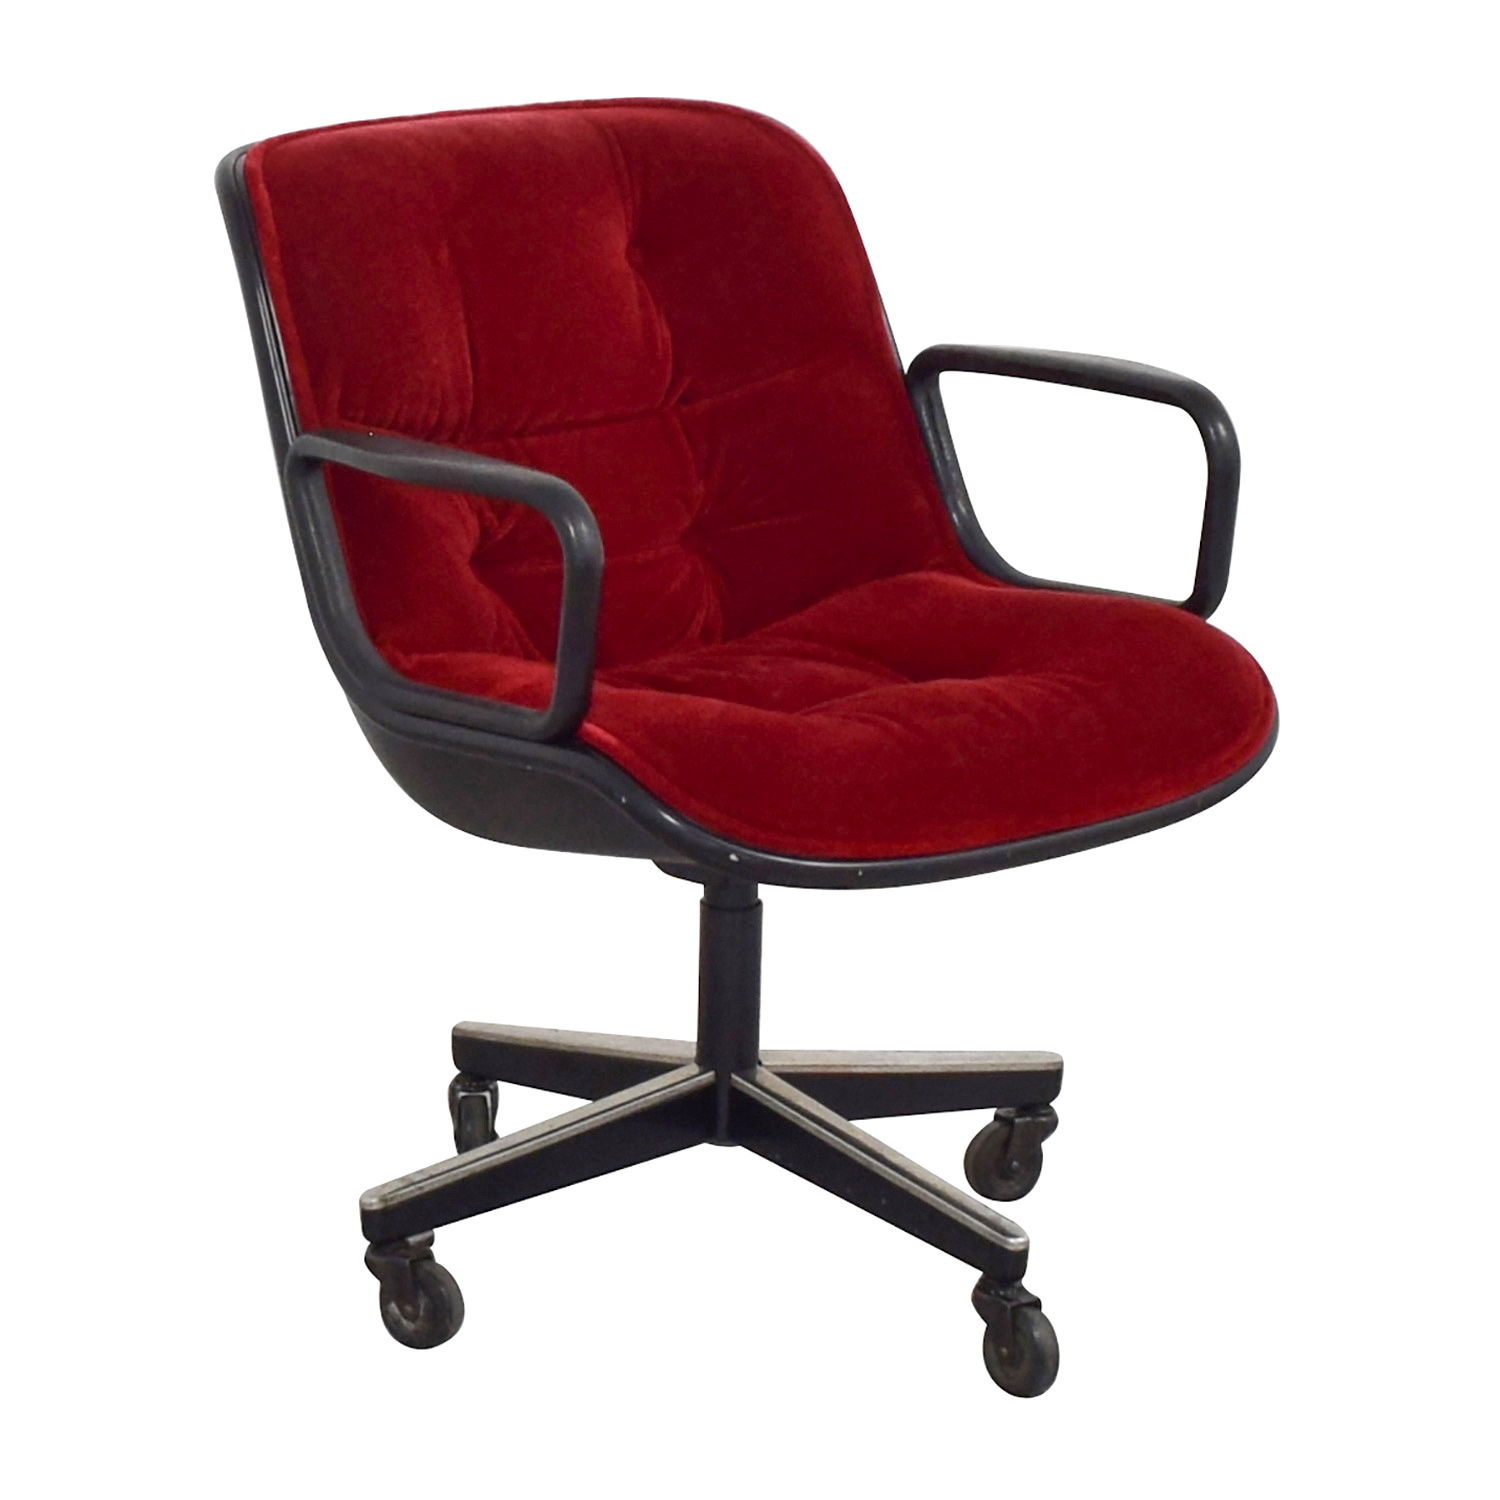 Knoll Knoll Pollock Executive Chair price